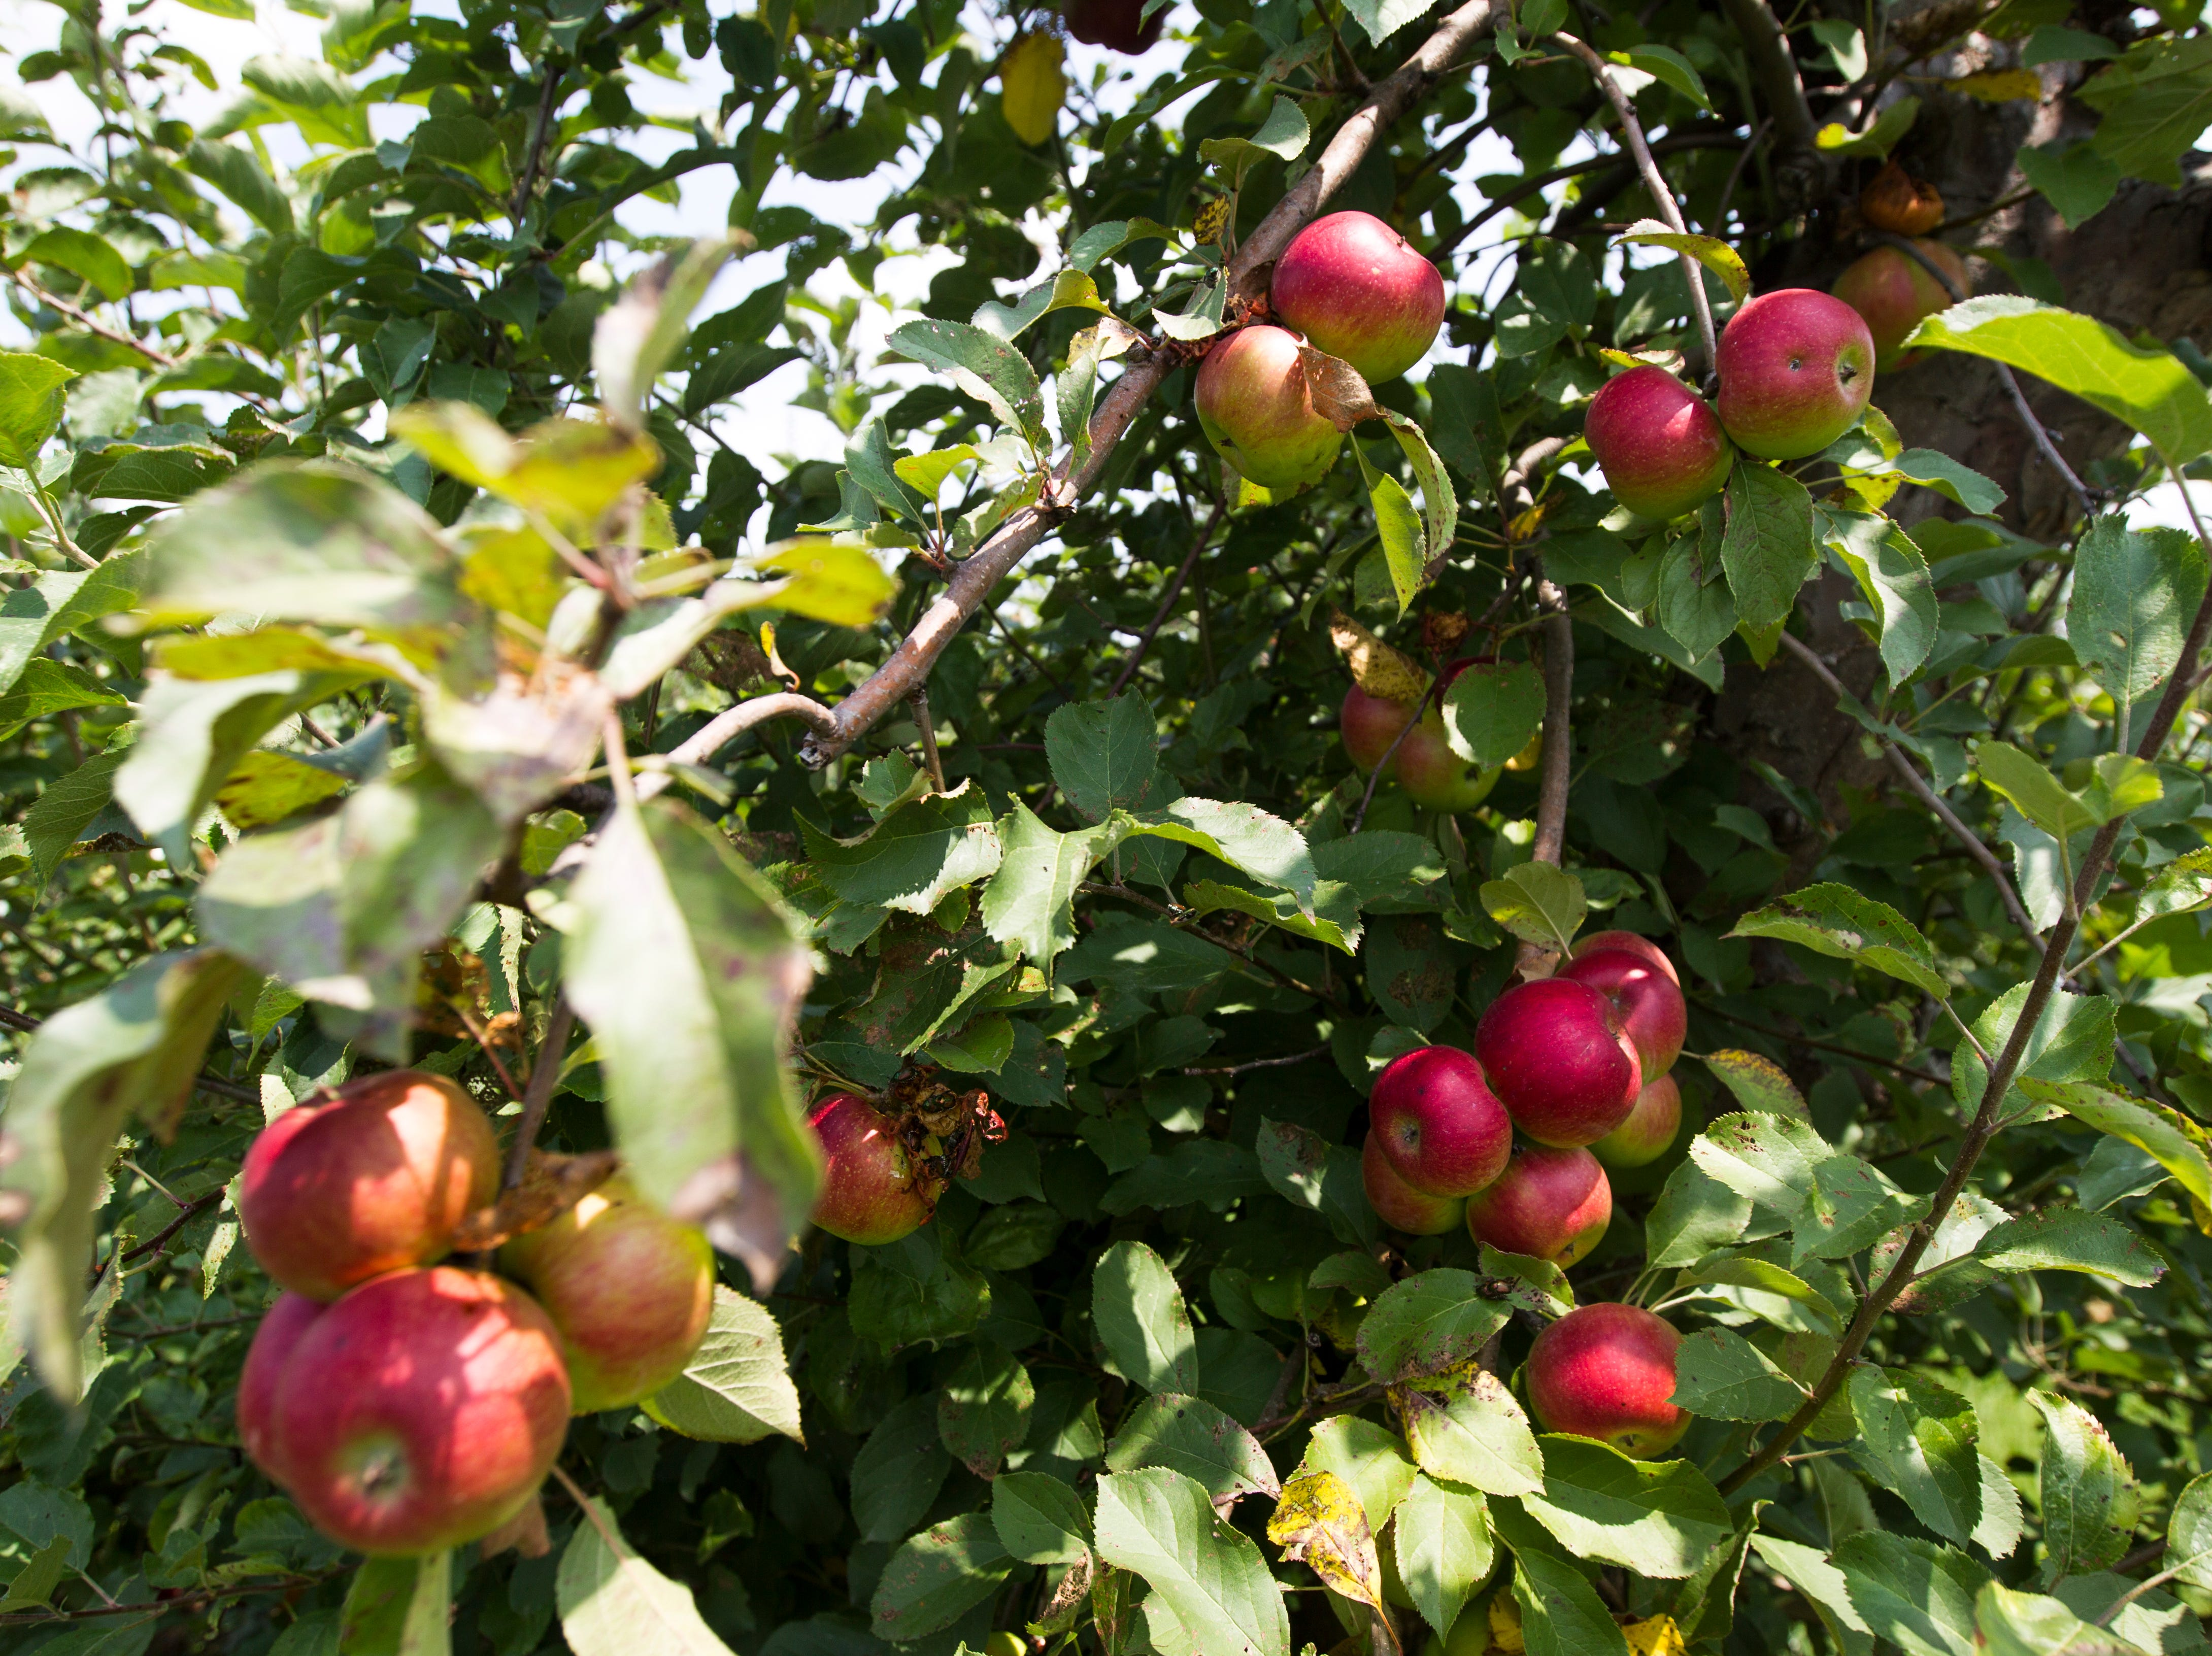 Burgundy apples are seen on Wednesday, Aug. 1, 2018, at Wilson's Apple Orchard in Iowa City, Iowa. These apples become ripe in late August.